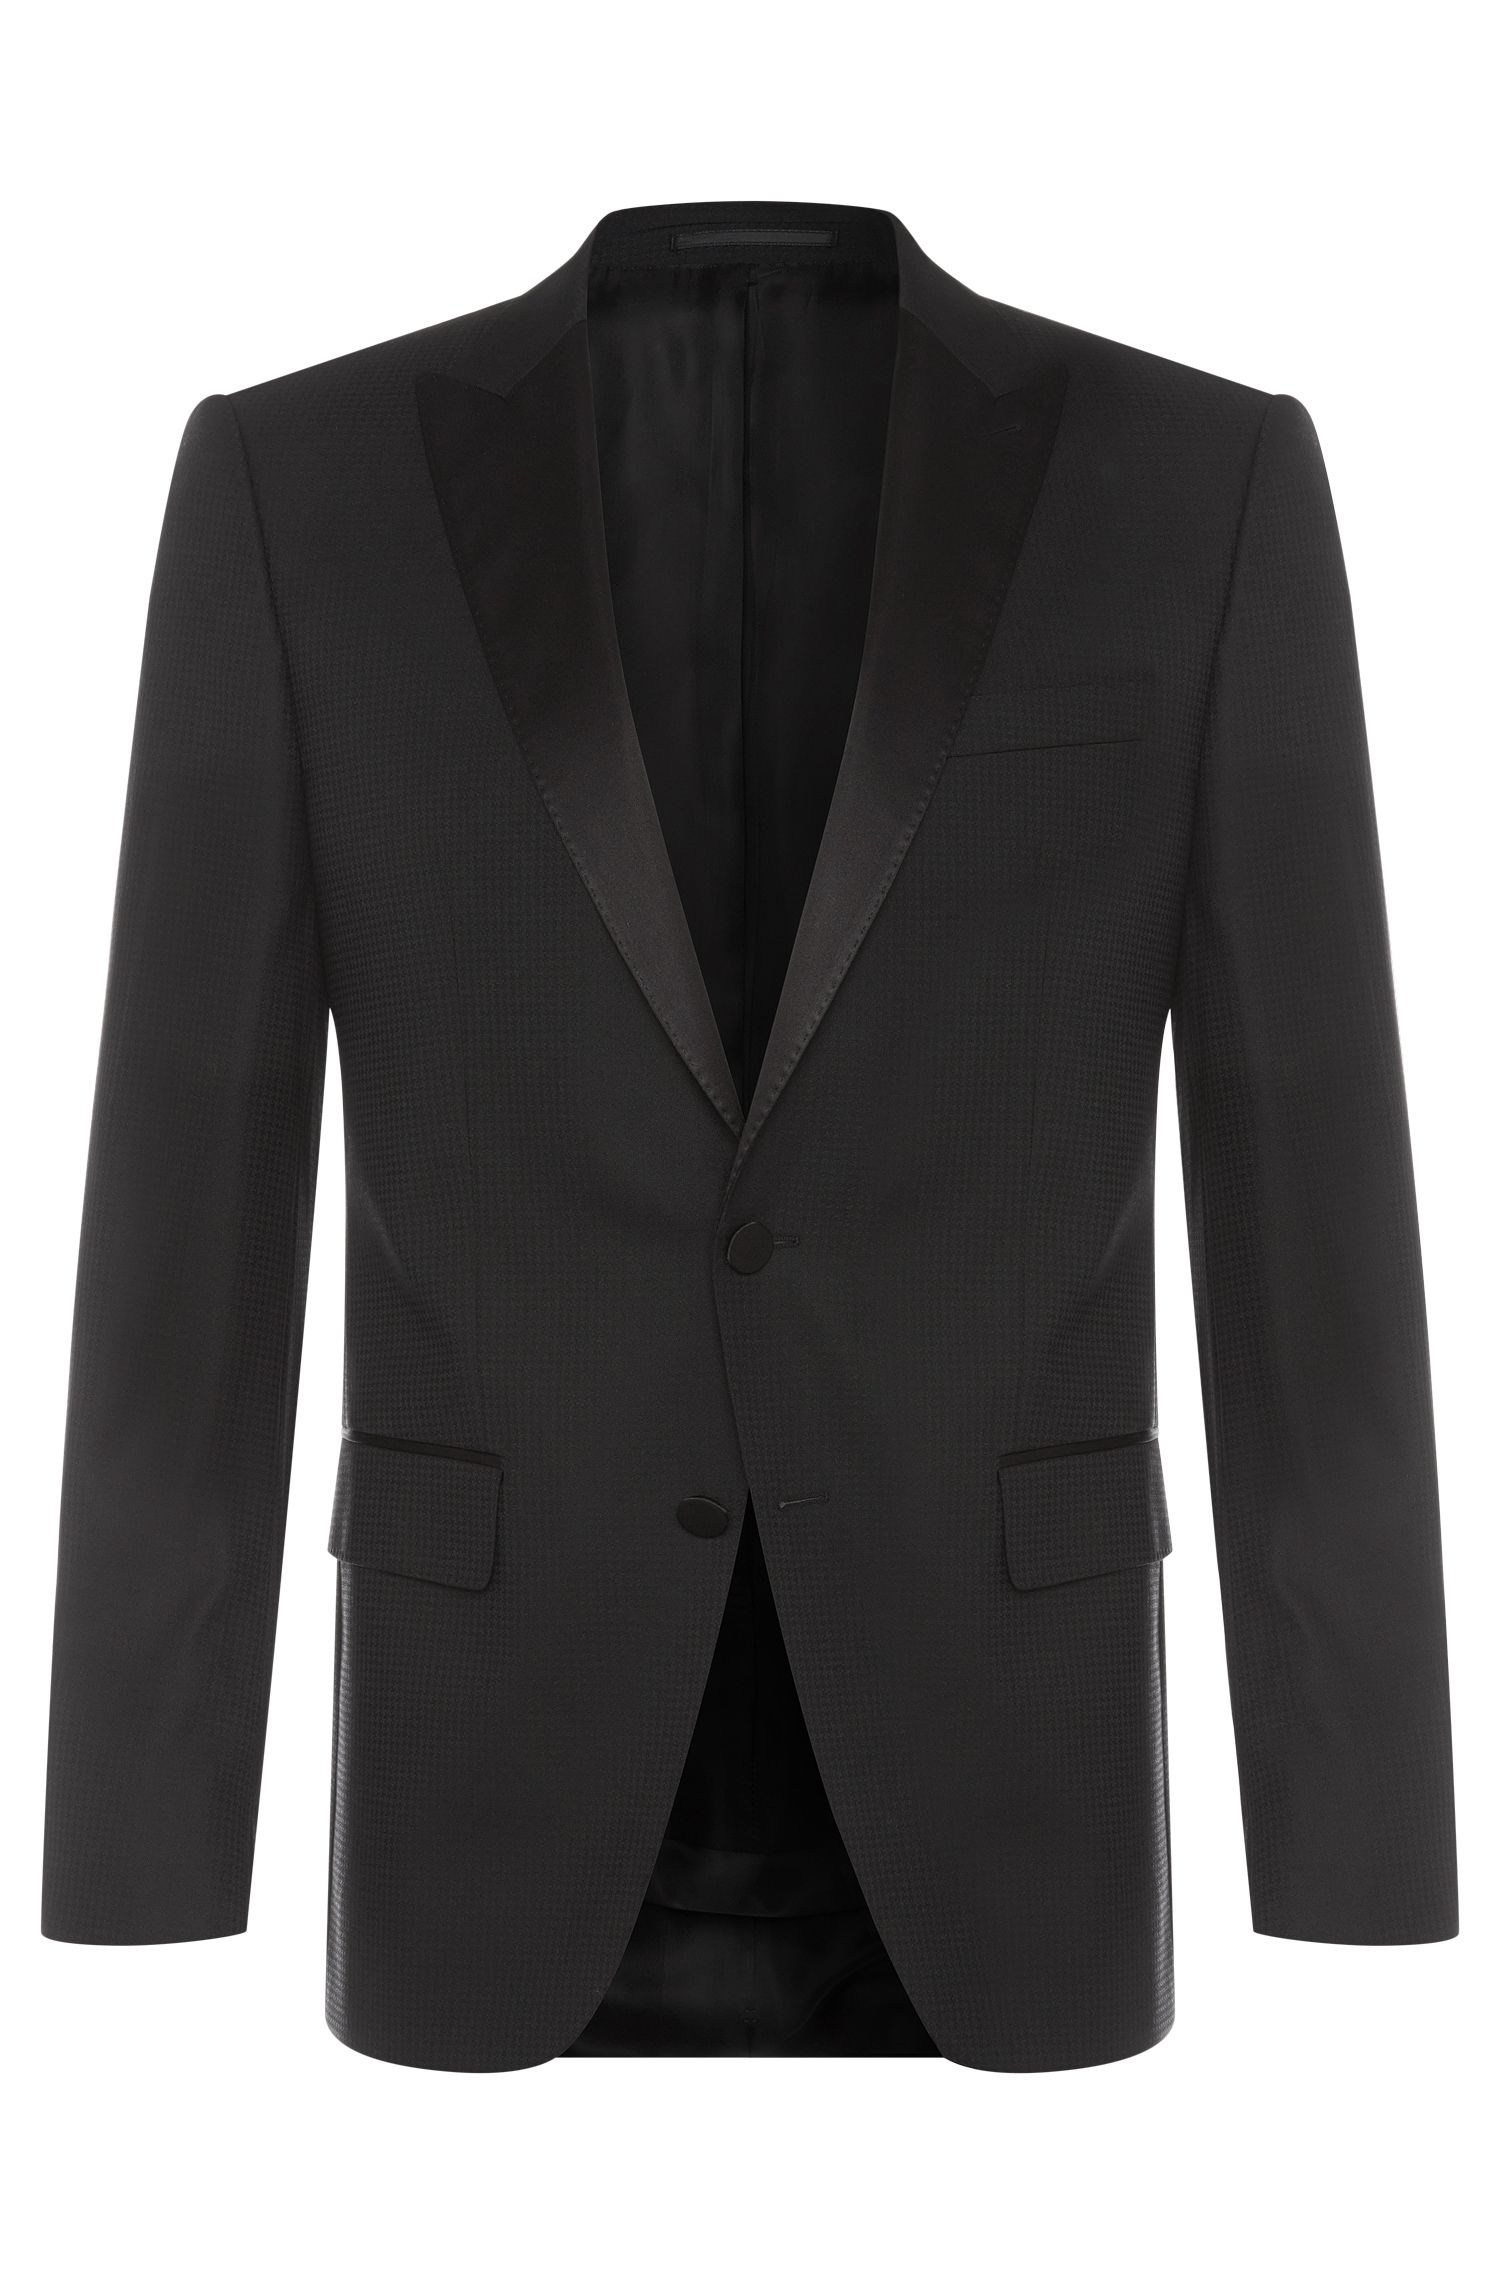 'Haimon' | Slim Fit, Virgin Wool Blend Dinner Jacket